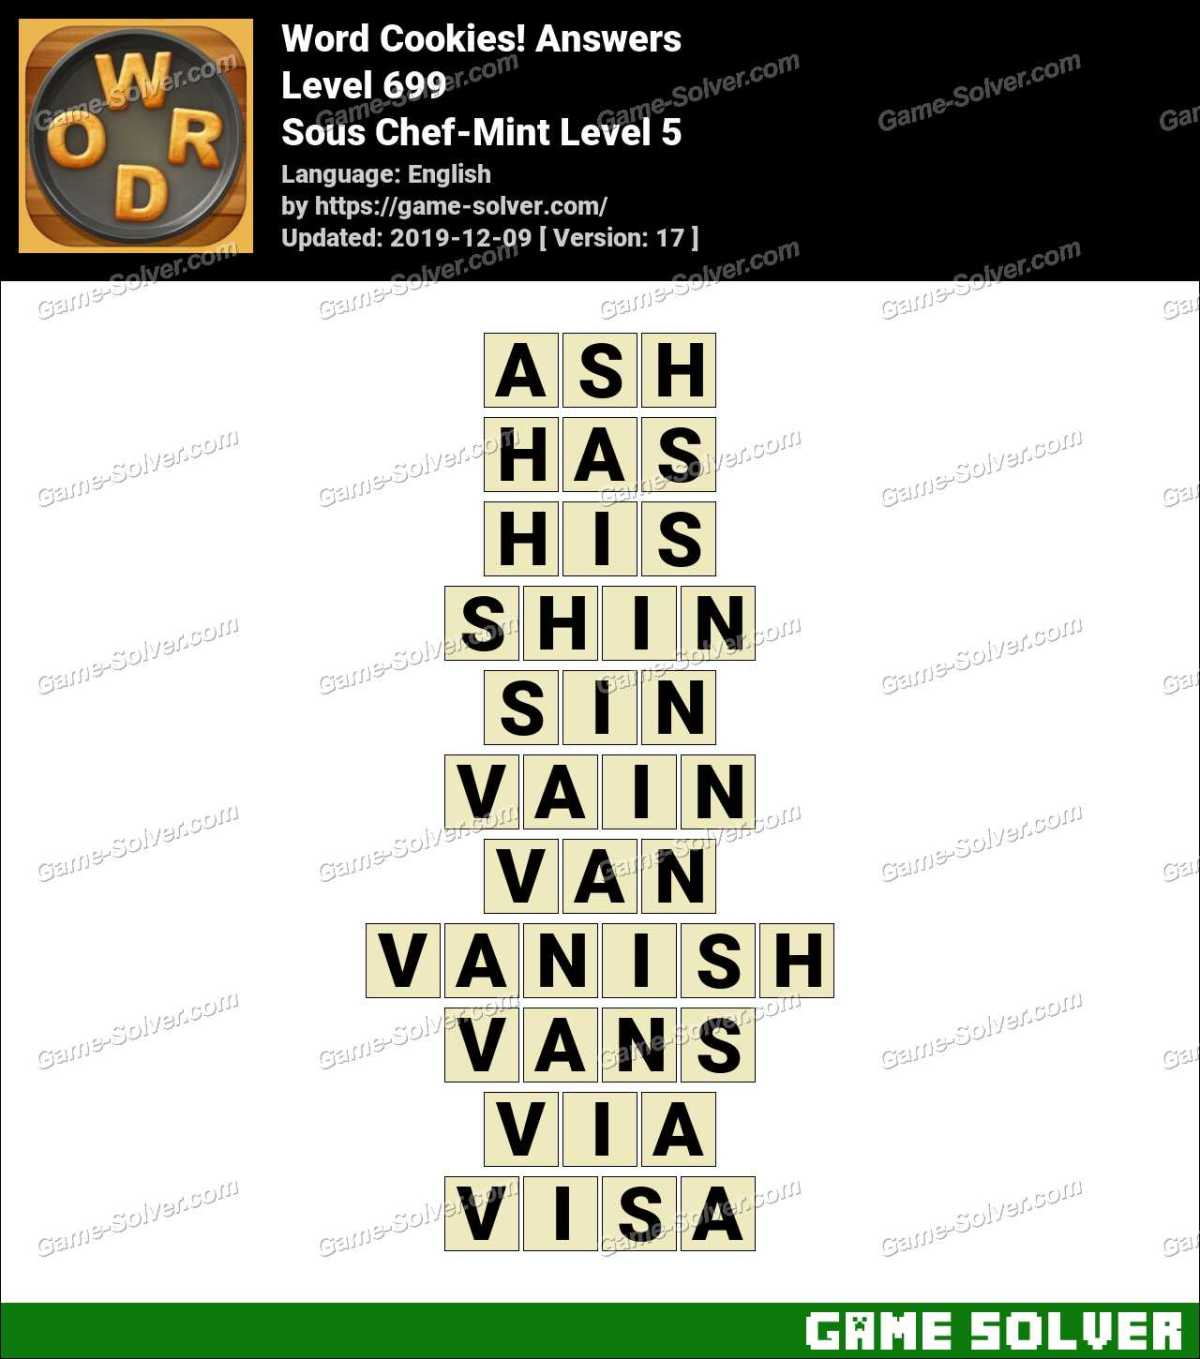 Word Cookies Sous Chef-Mint Level 5 Answers